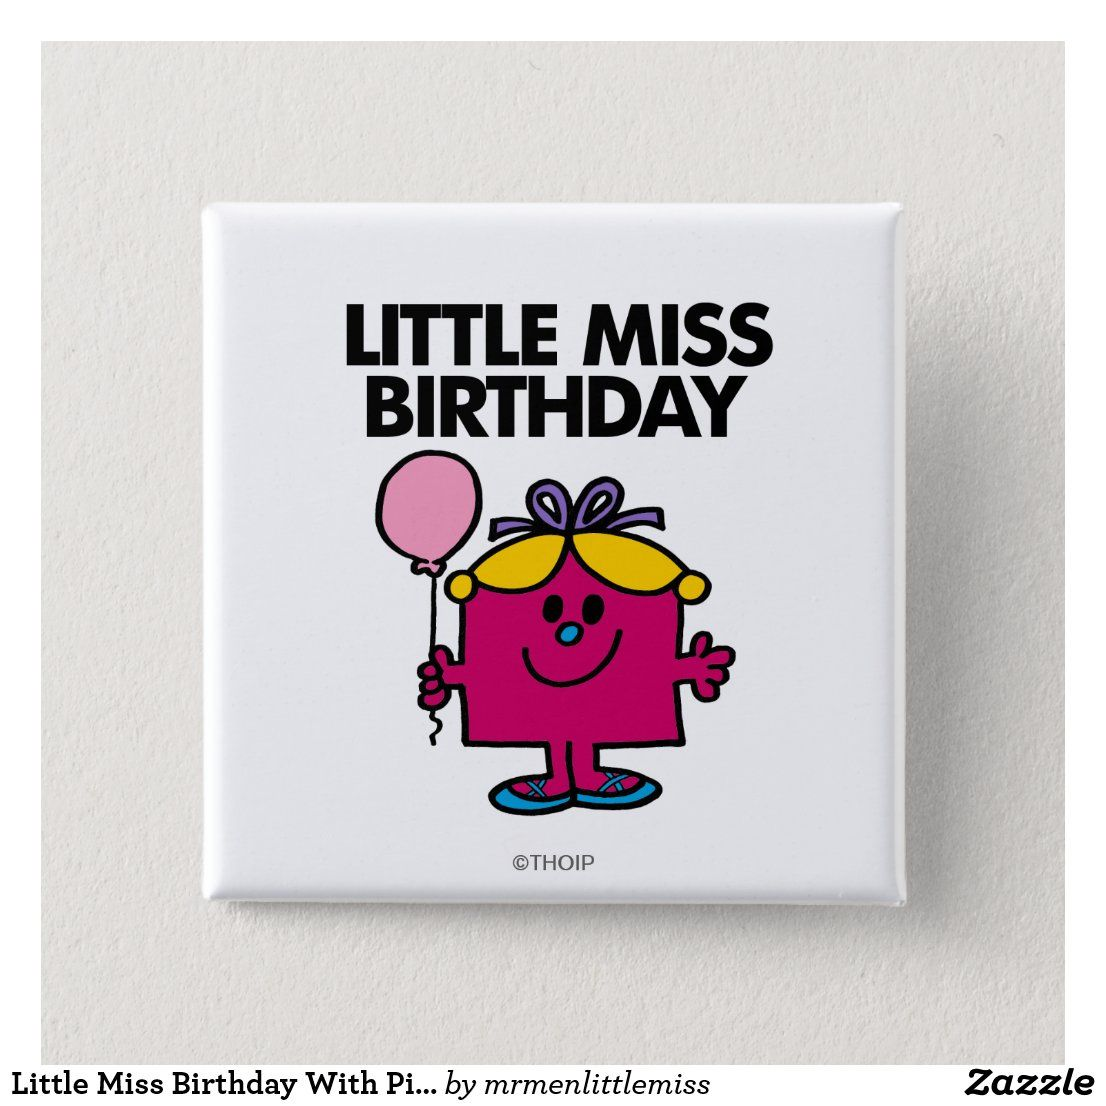 Little Miss Birthday With Pink Balloon Button Zazzle Com In 2021 Pink Balloons Little Miss Custom Holiday Card